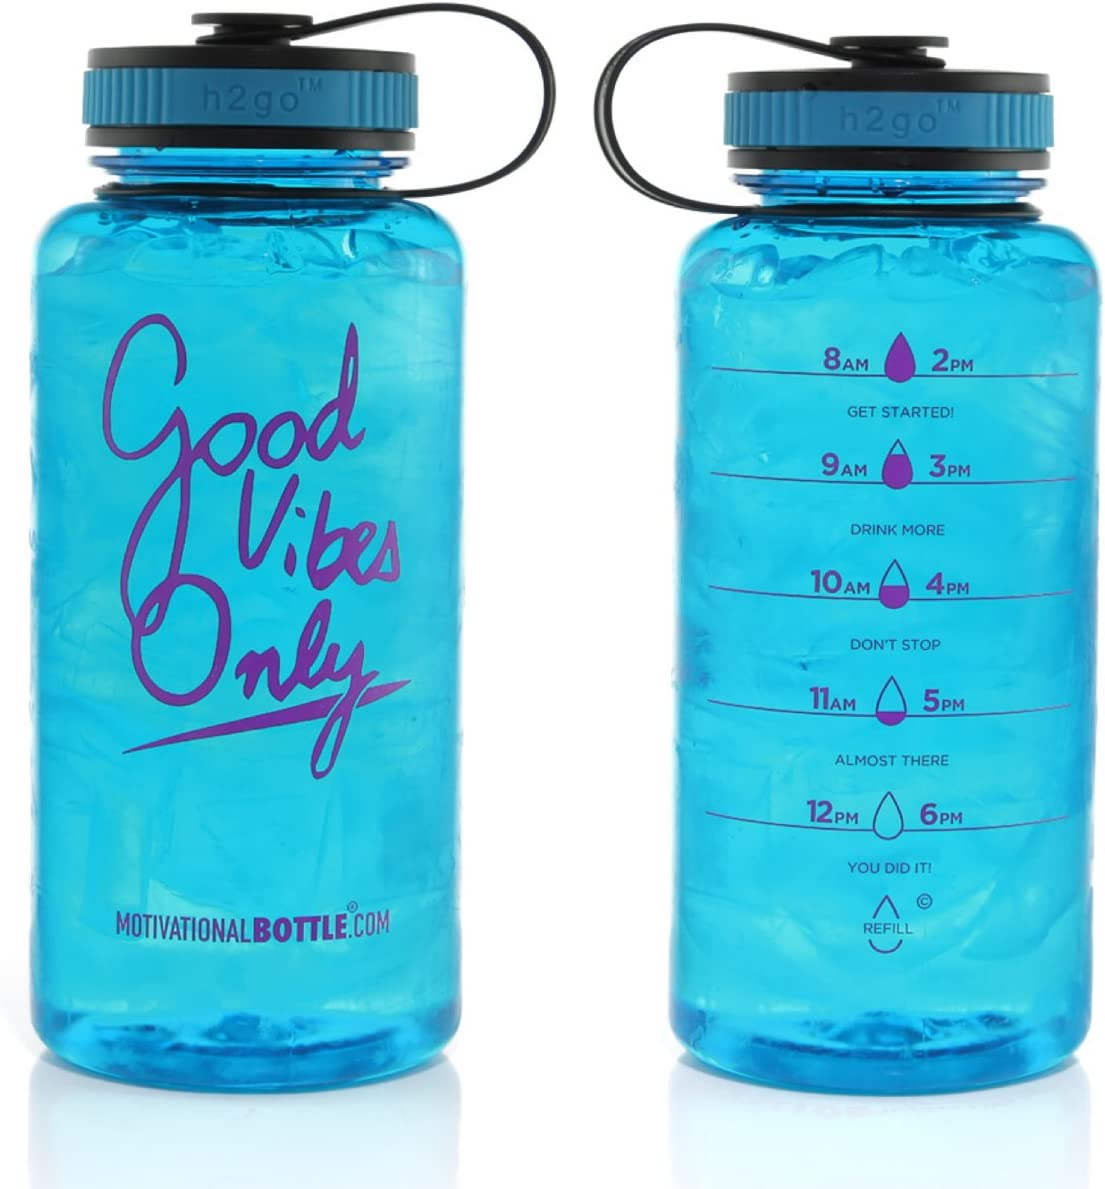 Motivational Bottle 34oz Fitness Workout Sports Water Bottle Unique Timeline | Measurements | Goal Marked Times Measuring Your Daily Water Intake, BPA Free Non-Toxic Tritan